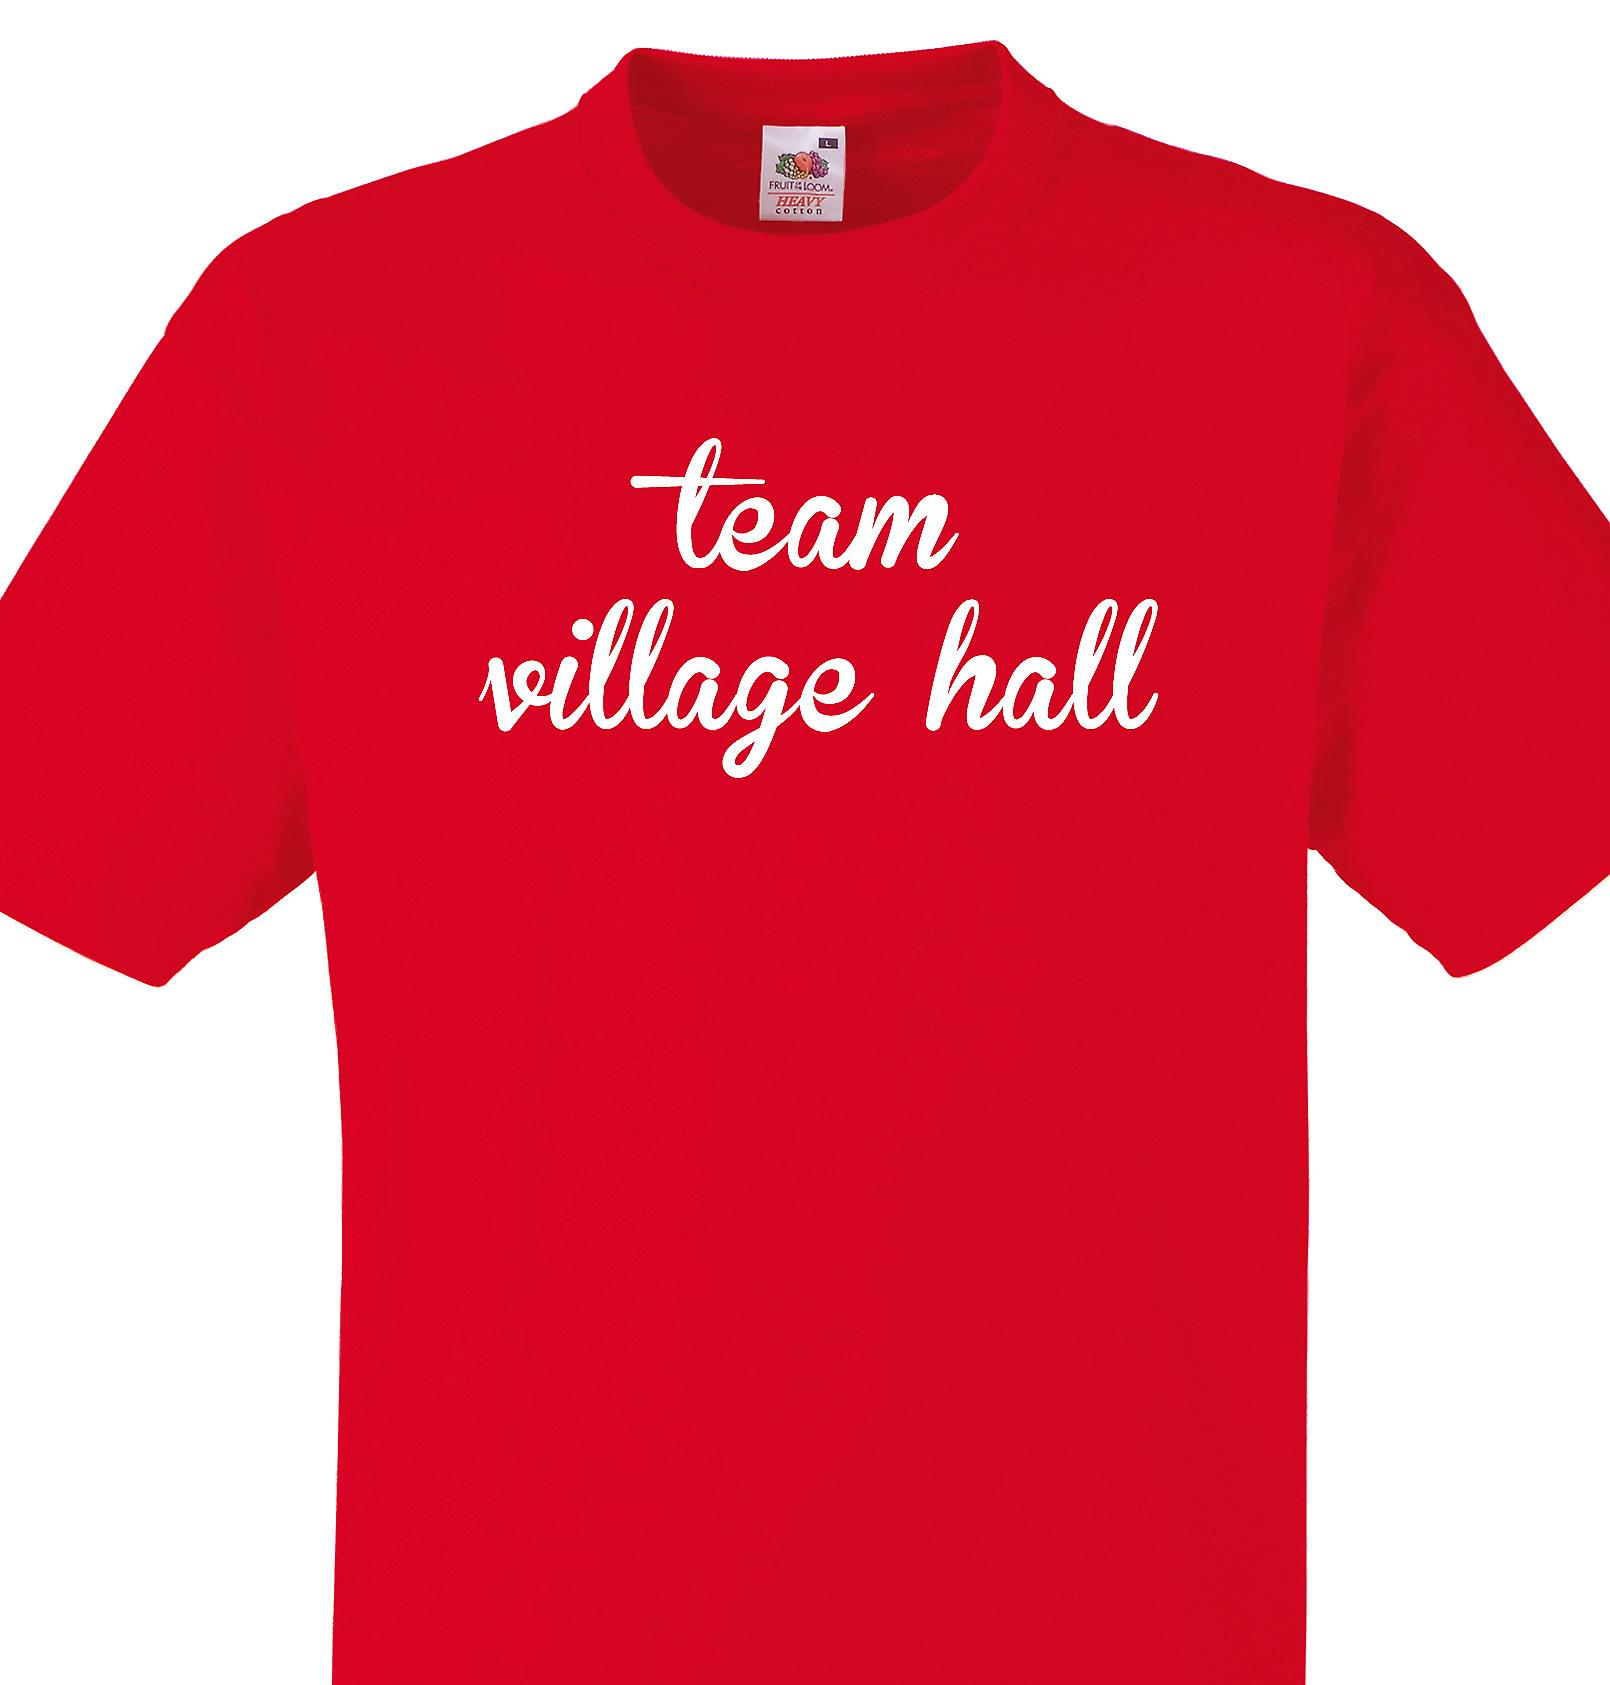 Team Village hall Red T shirt